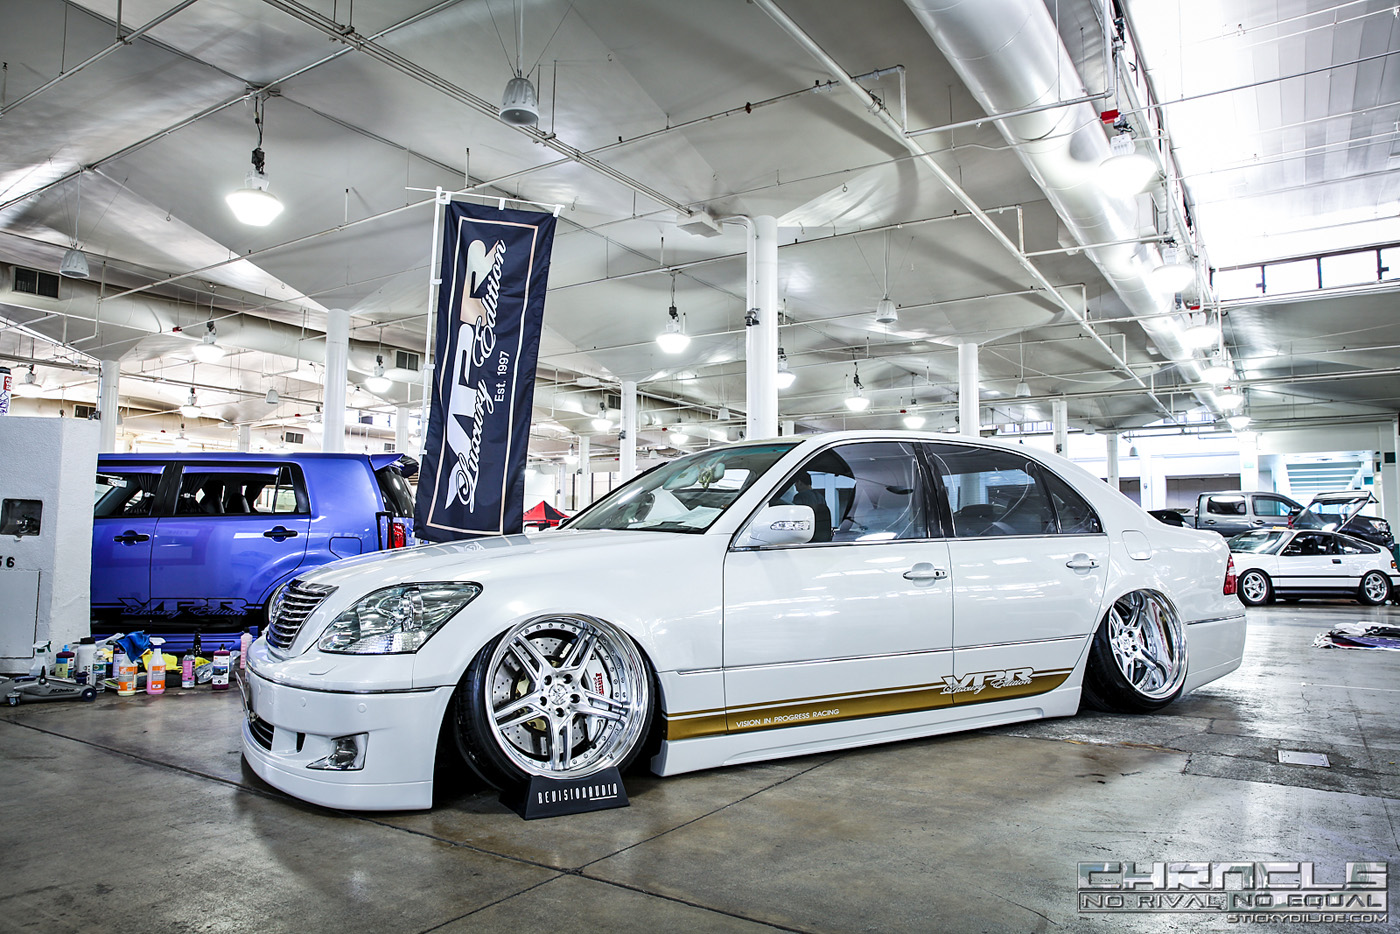 Wekfest Hawaii 2015 Coverage…Part 2 of 2…